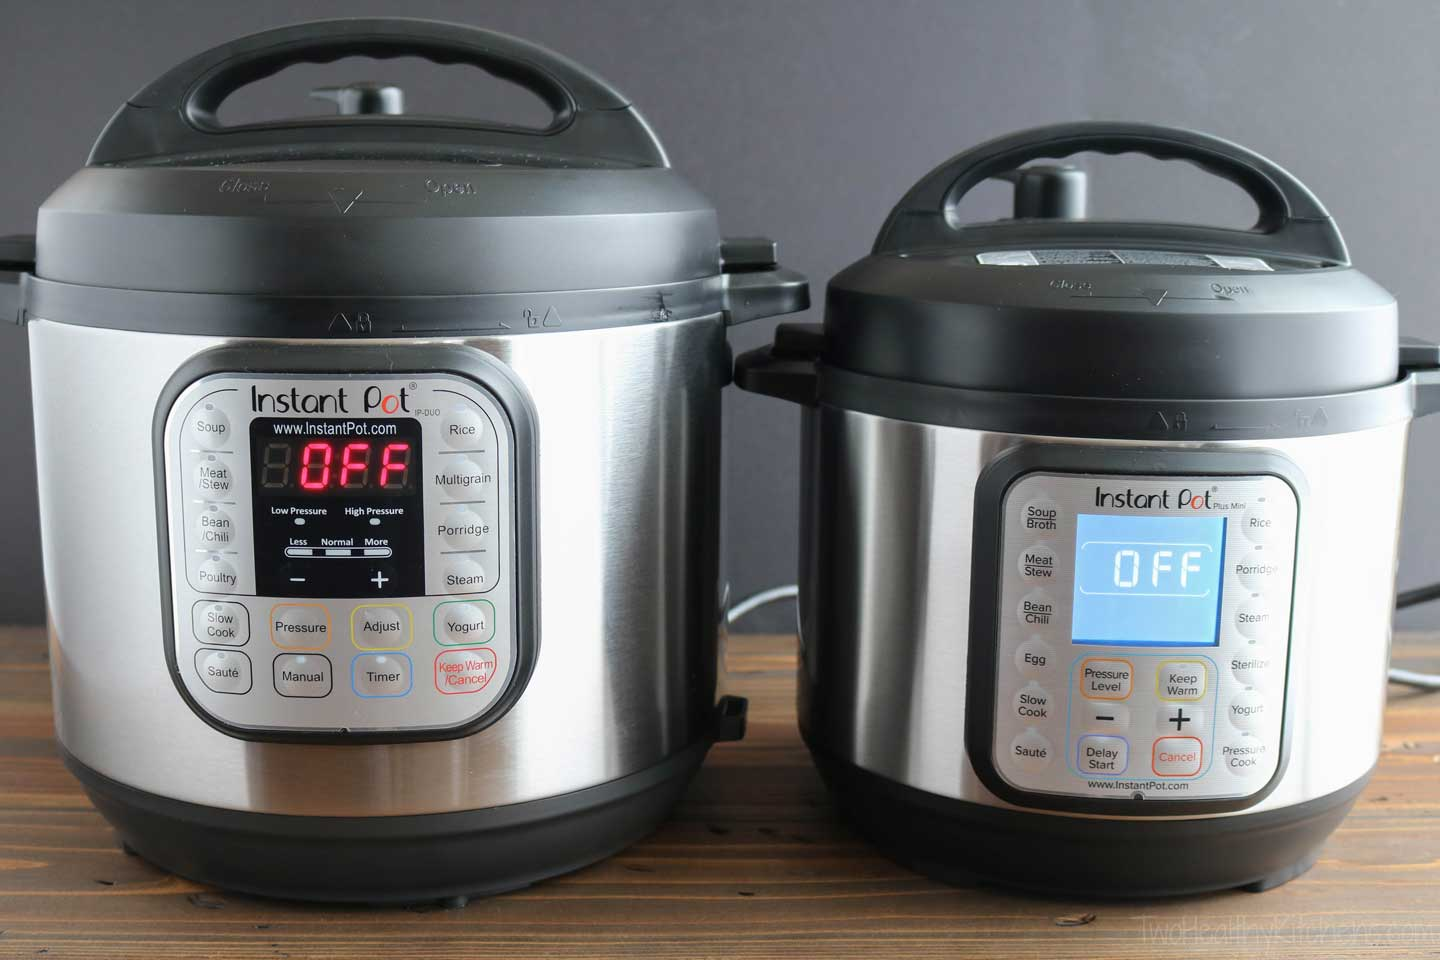 The Instant Pot Duo vs Duo Plus: there are differences in the number of functions and in the user interface screens.